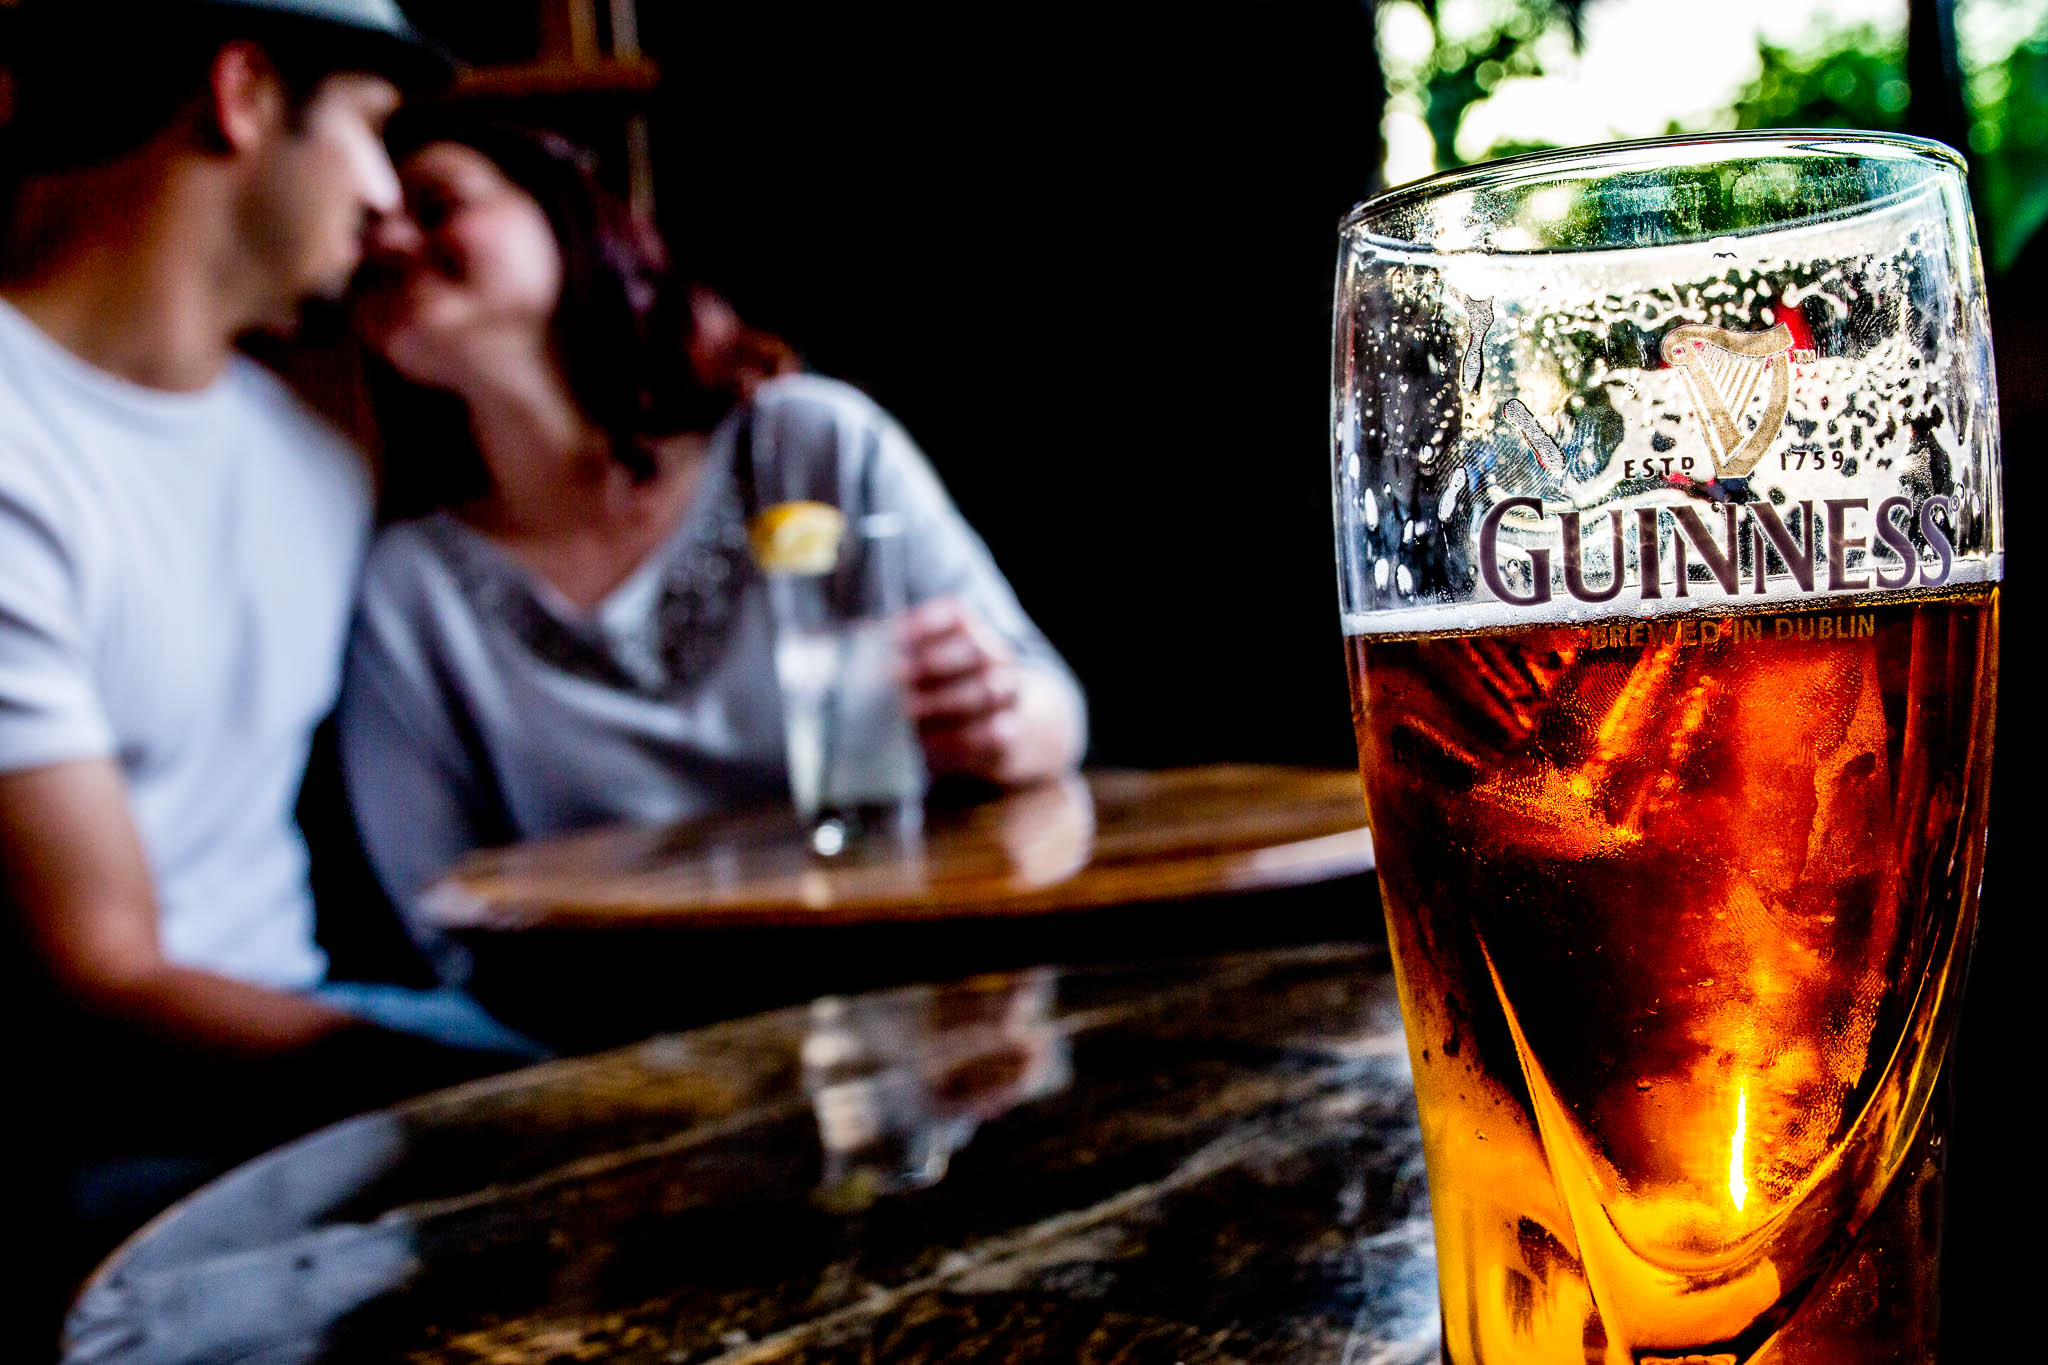 Portland Engagement Photo enjoying a guiness beer